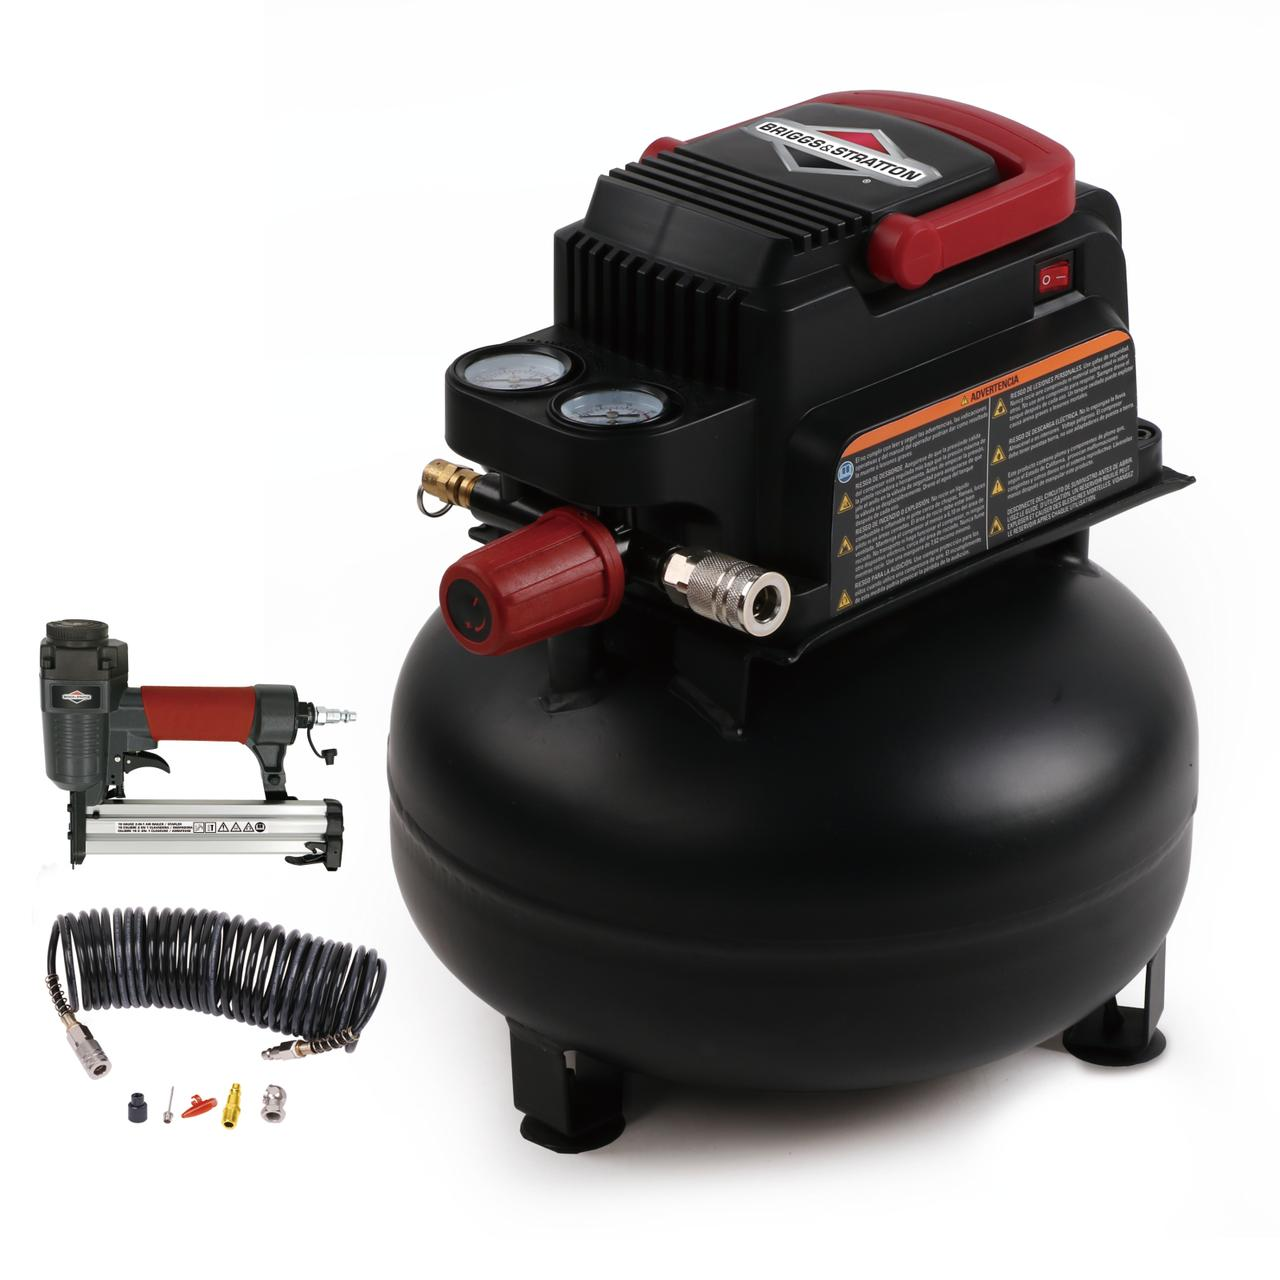 Briggs & Stratton 3-Gallon Air Compressor Inflation and Fastening Accessory Kit